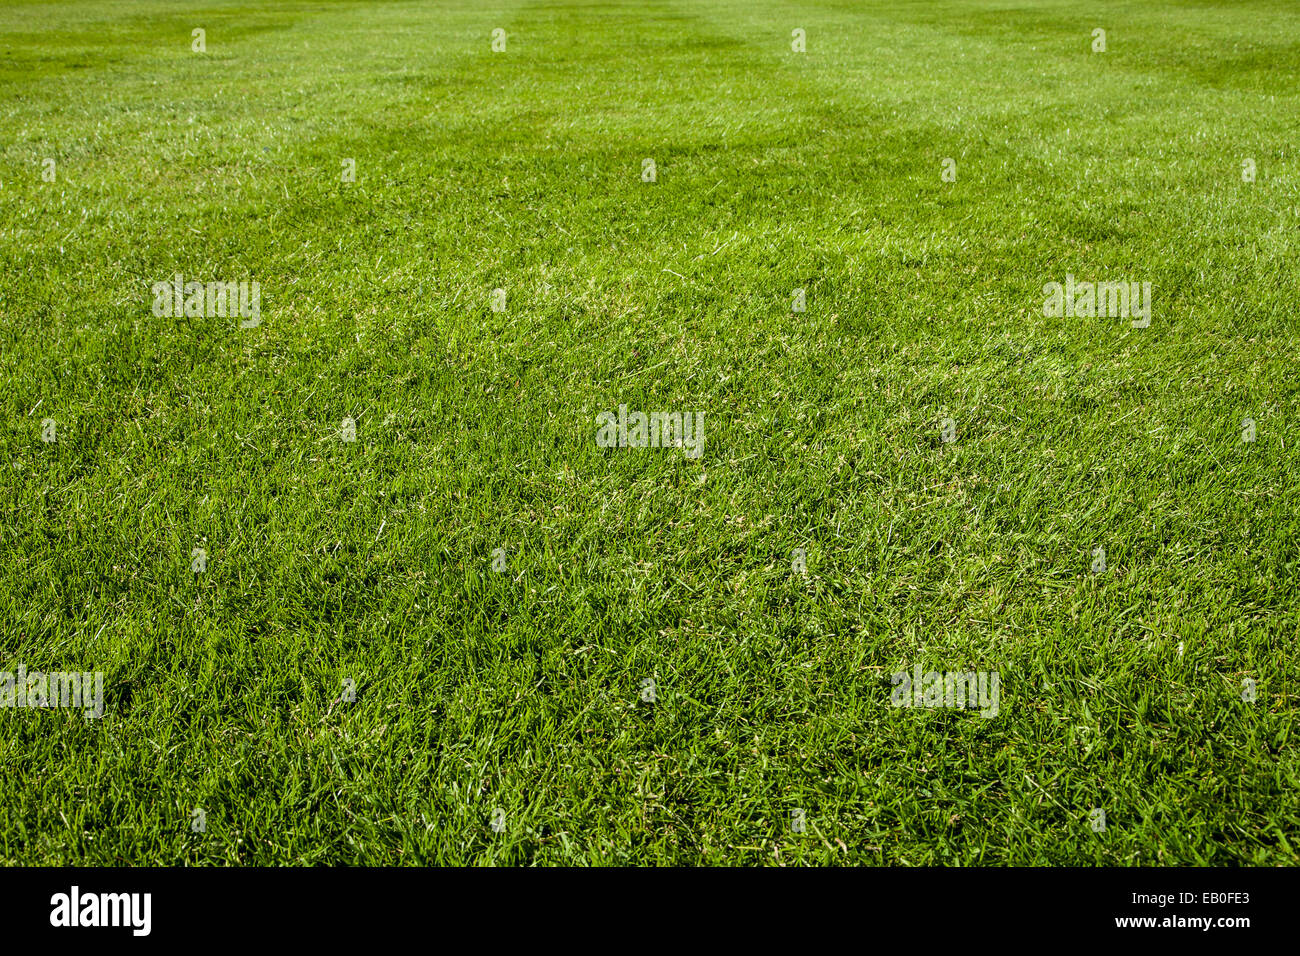 green lawn, soccer field with stripes - Stock Image